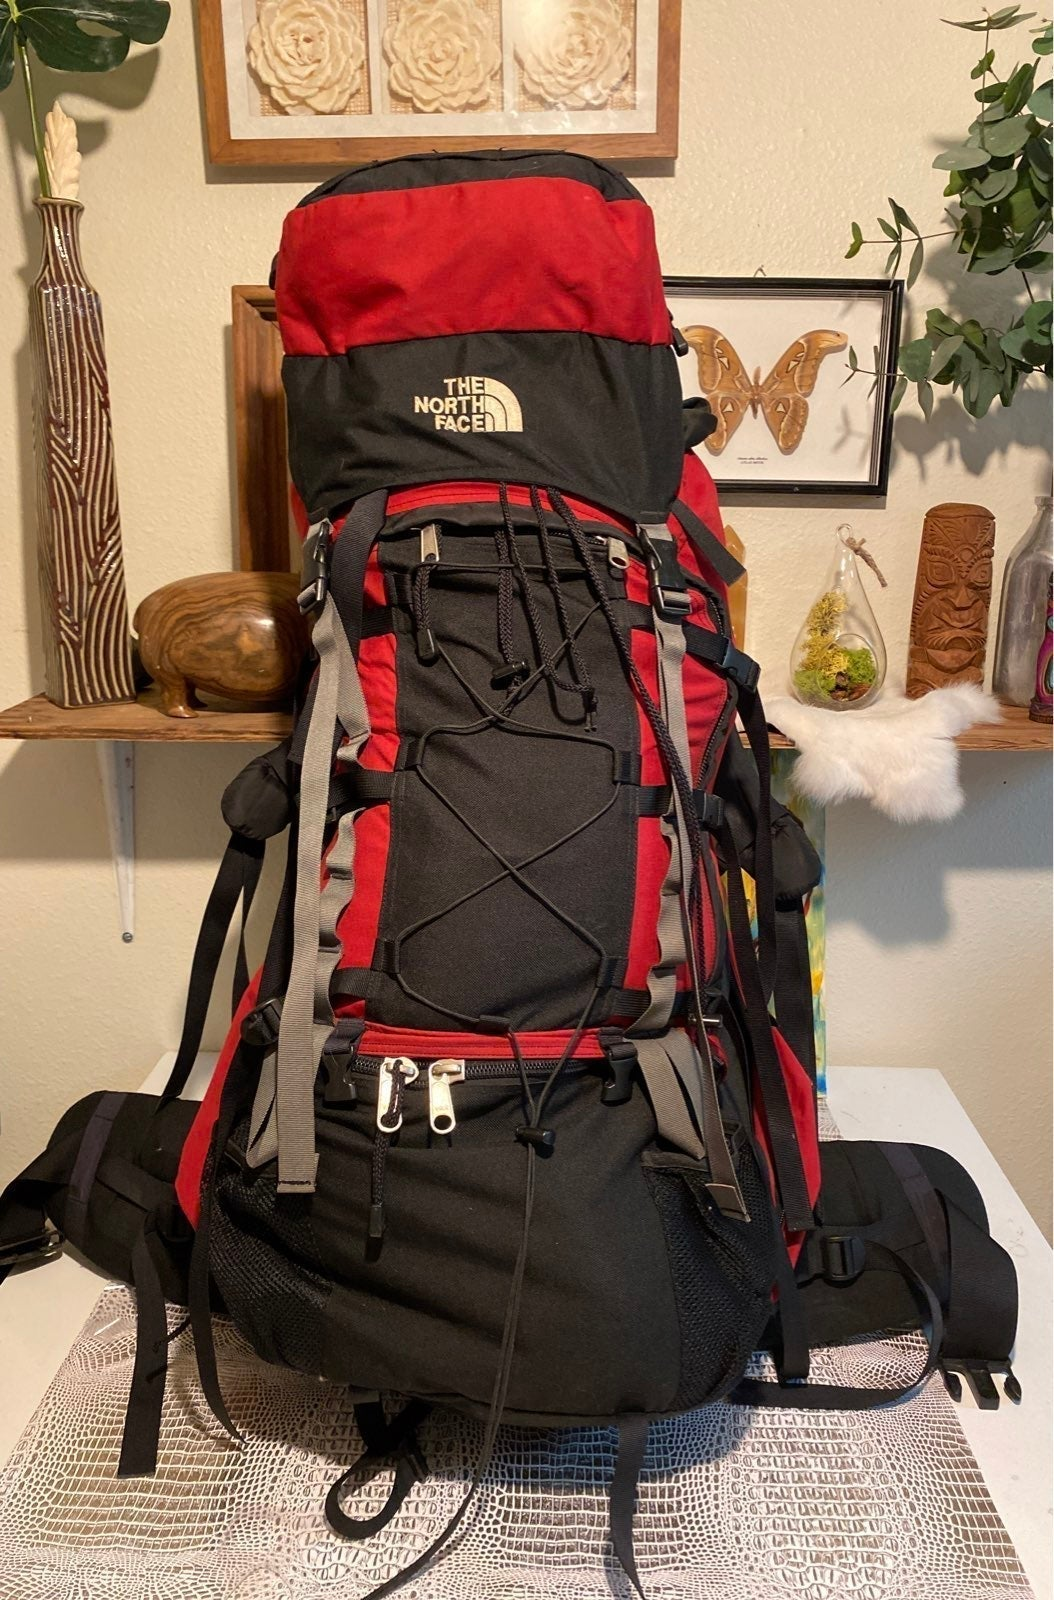 The North face expedition backpack